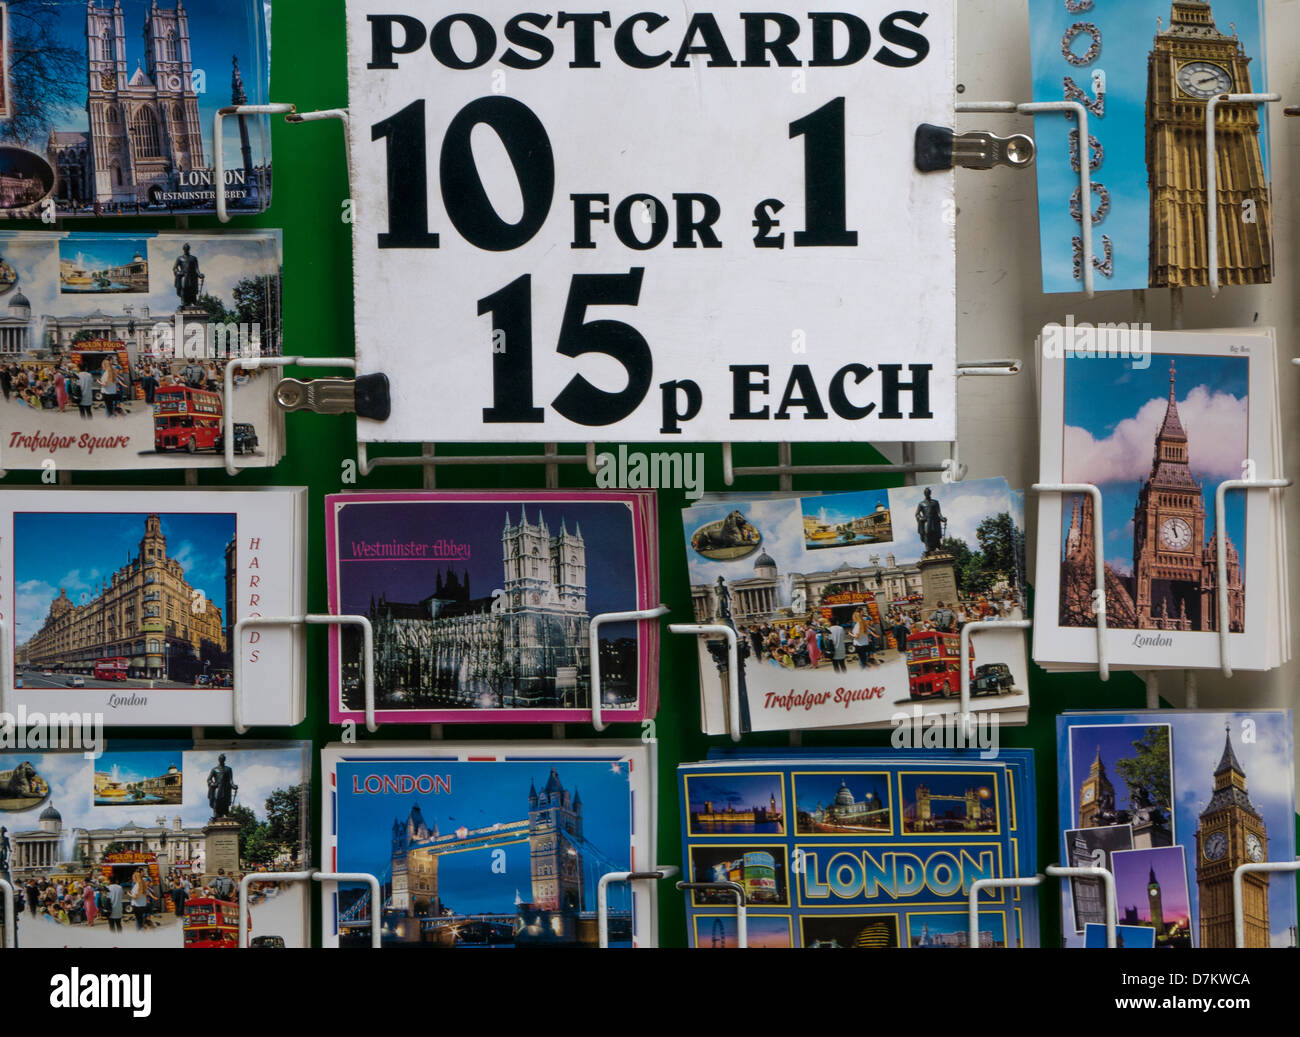 Postcards for sale in Gift Shop in London - Stock Image